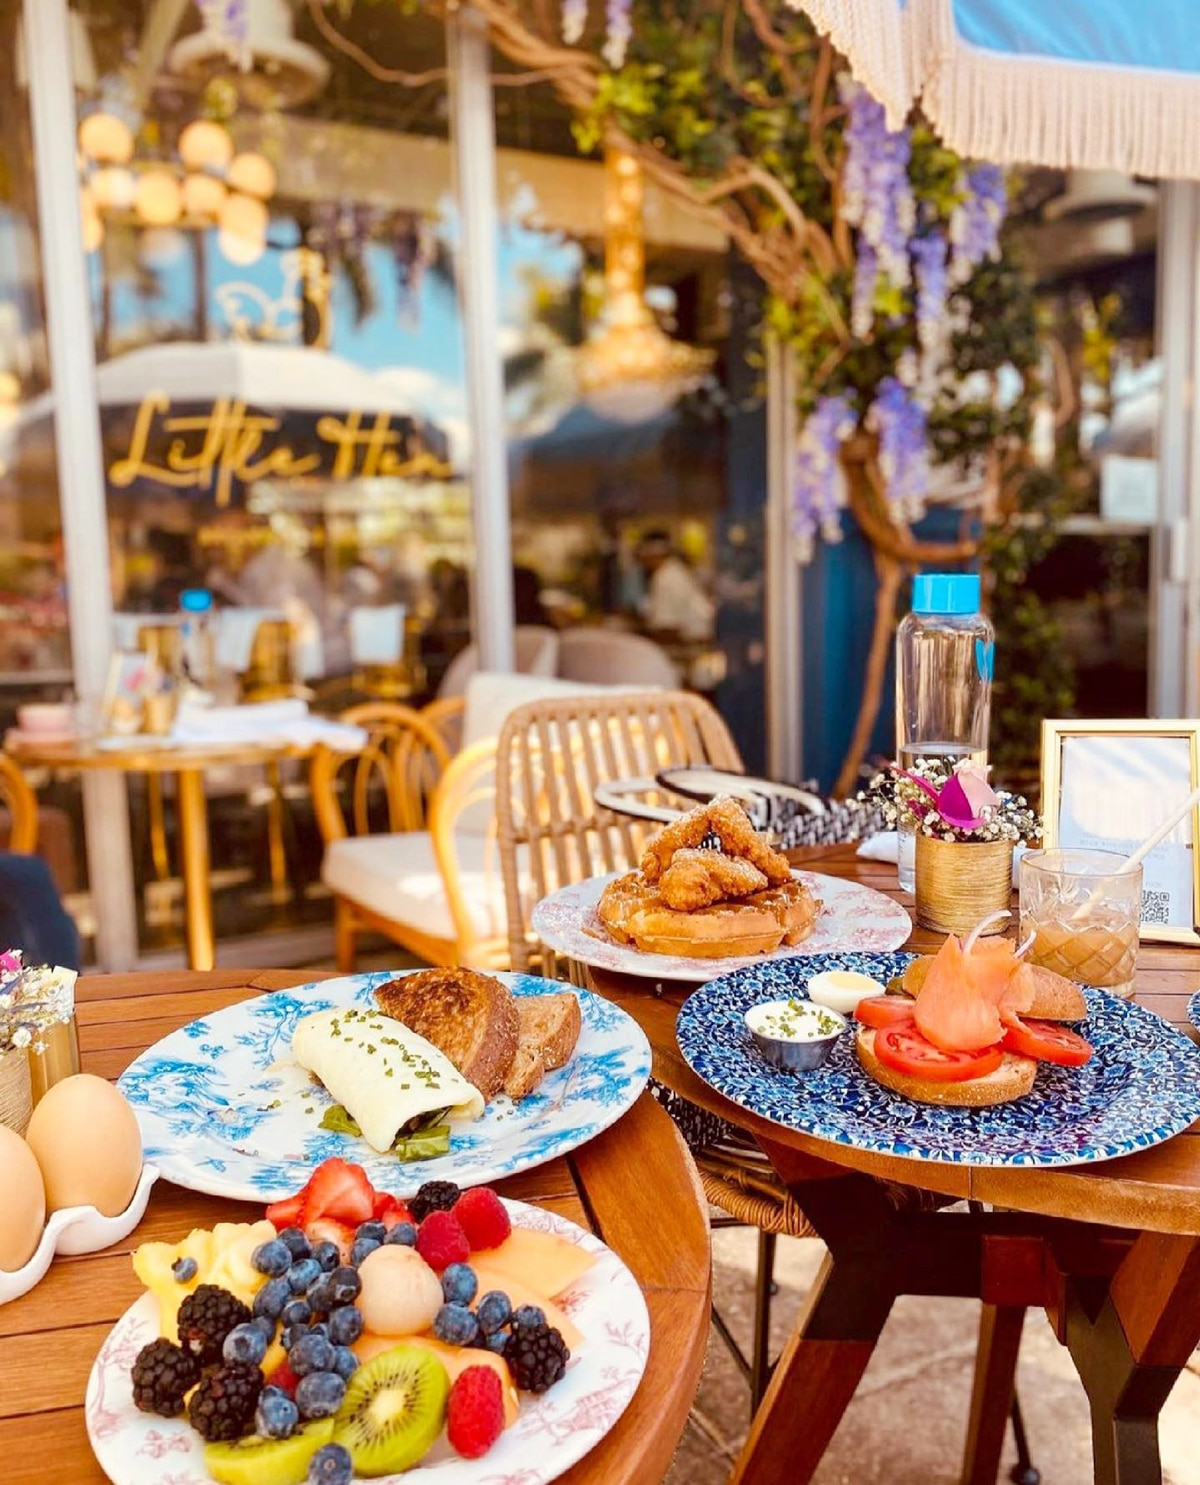 Miami Brunch Hostspot Little Hen in Midtown Miami with Instagrammable location and food